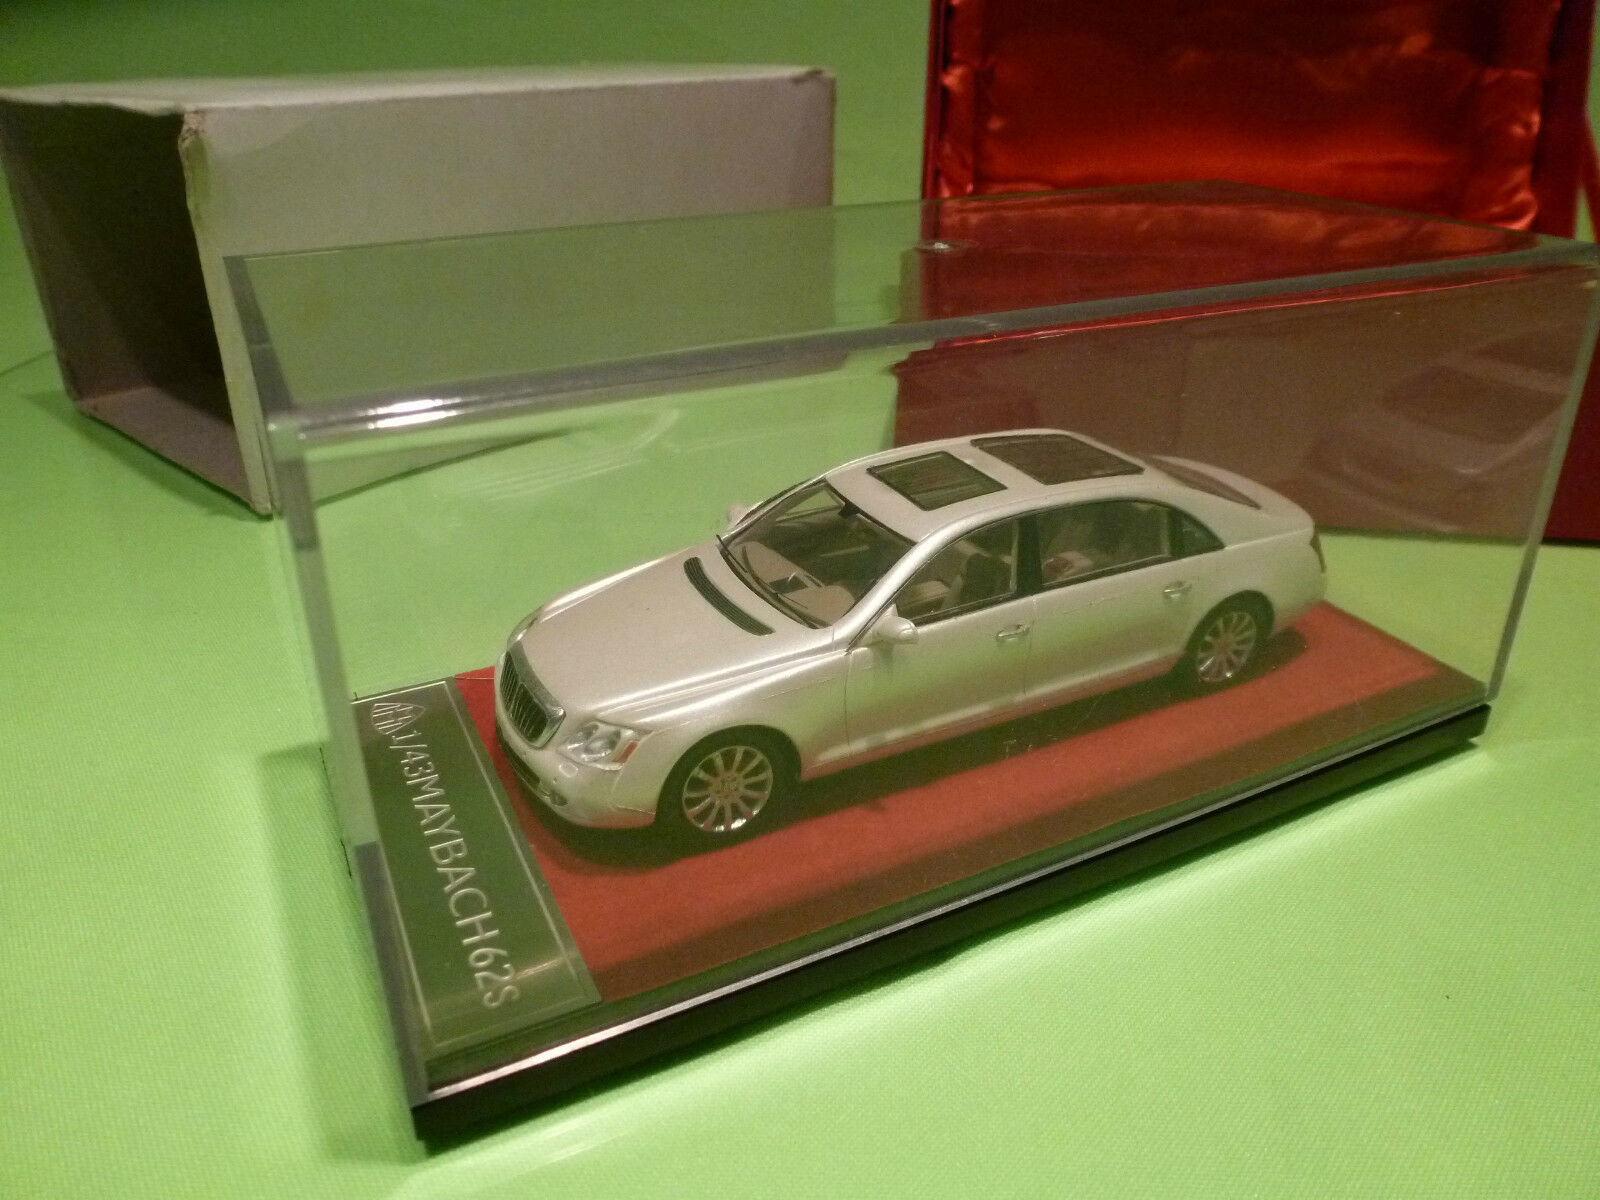 CMR PRECISION MODELS  1 43 MAYBACH 62S 62S 62S - SMALL CAR   - GOOD CONDITION IN BOX c77bac